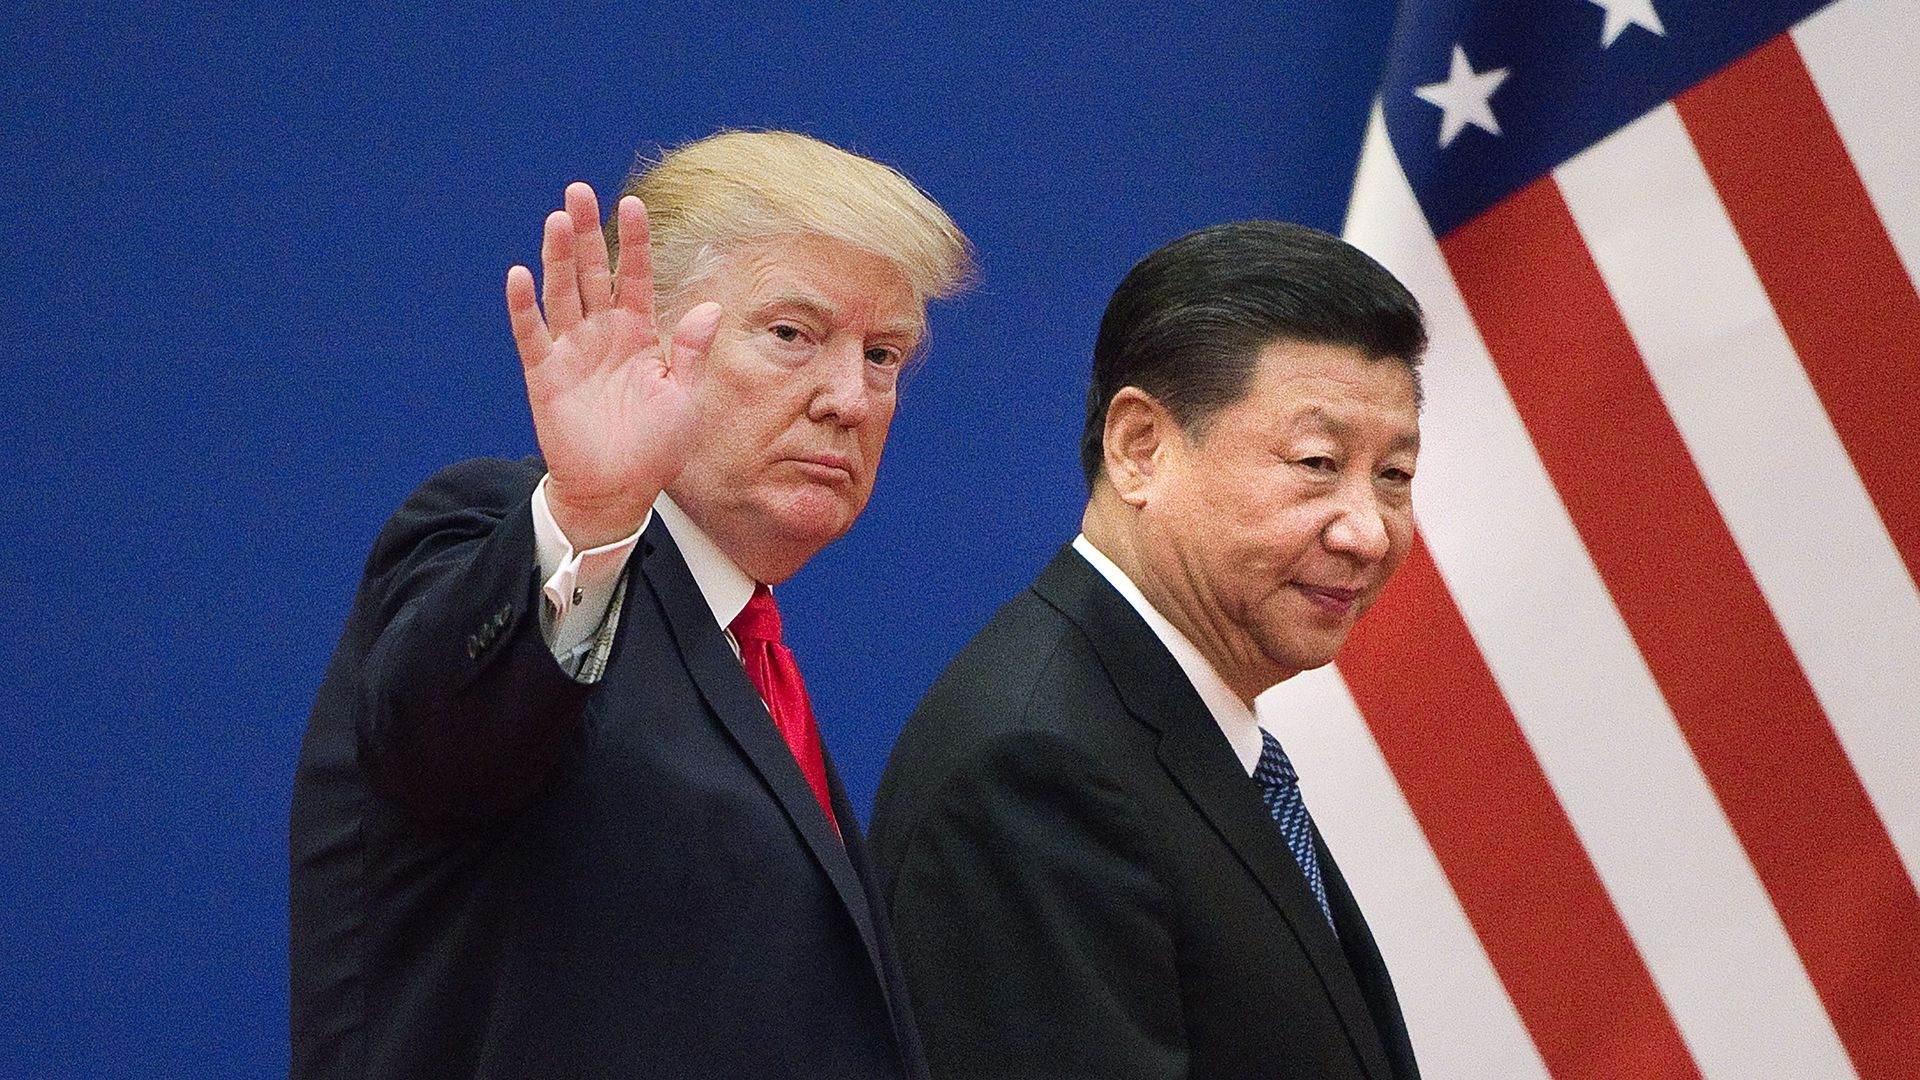 Donald Trump and Xi Jinping of China. The trade delegations are currently negotiating.